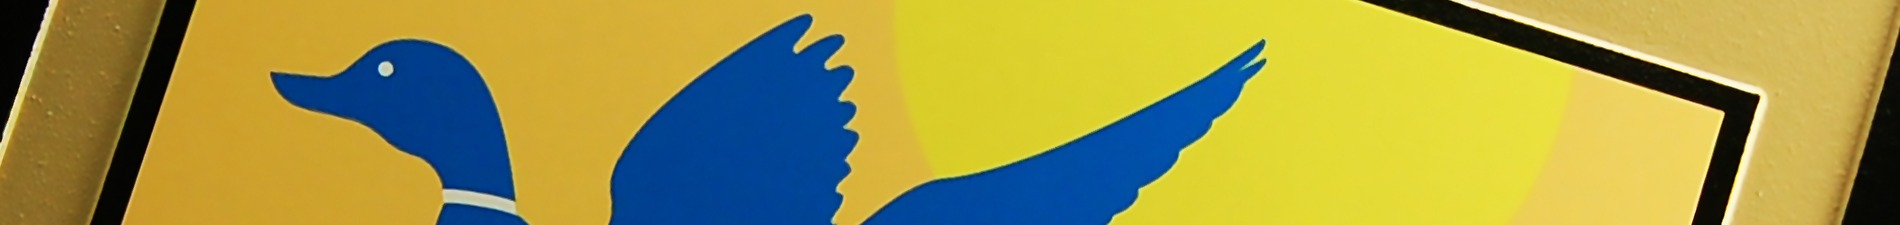 Header image closeup of plaque with UV-printed, blue and yellow seal of U.S. Fish & Wildlife Service